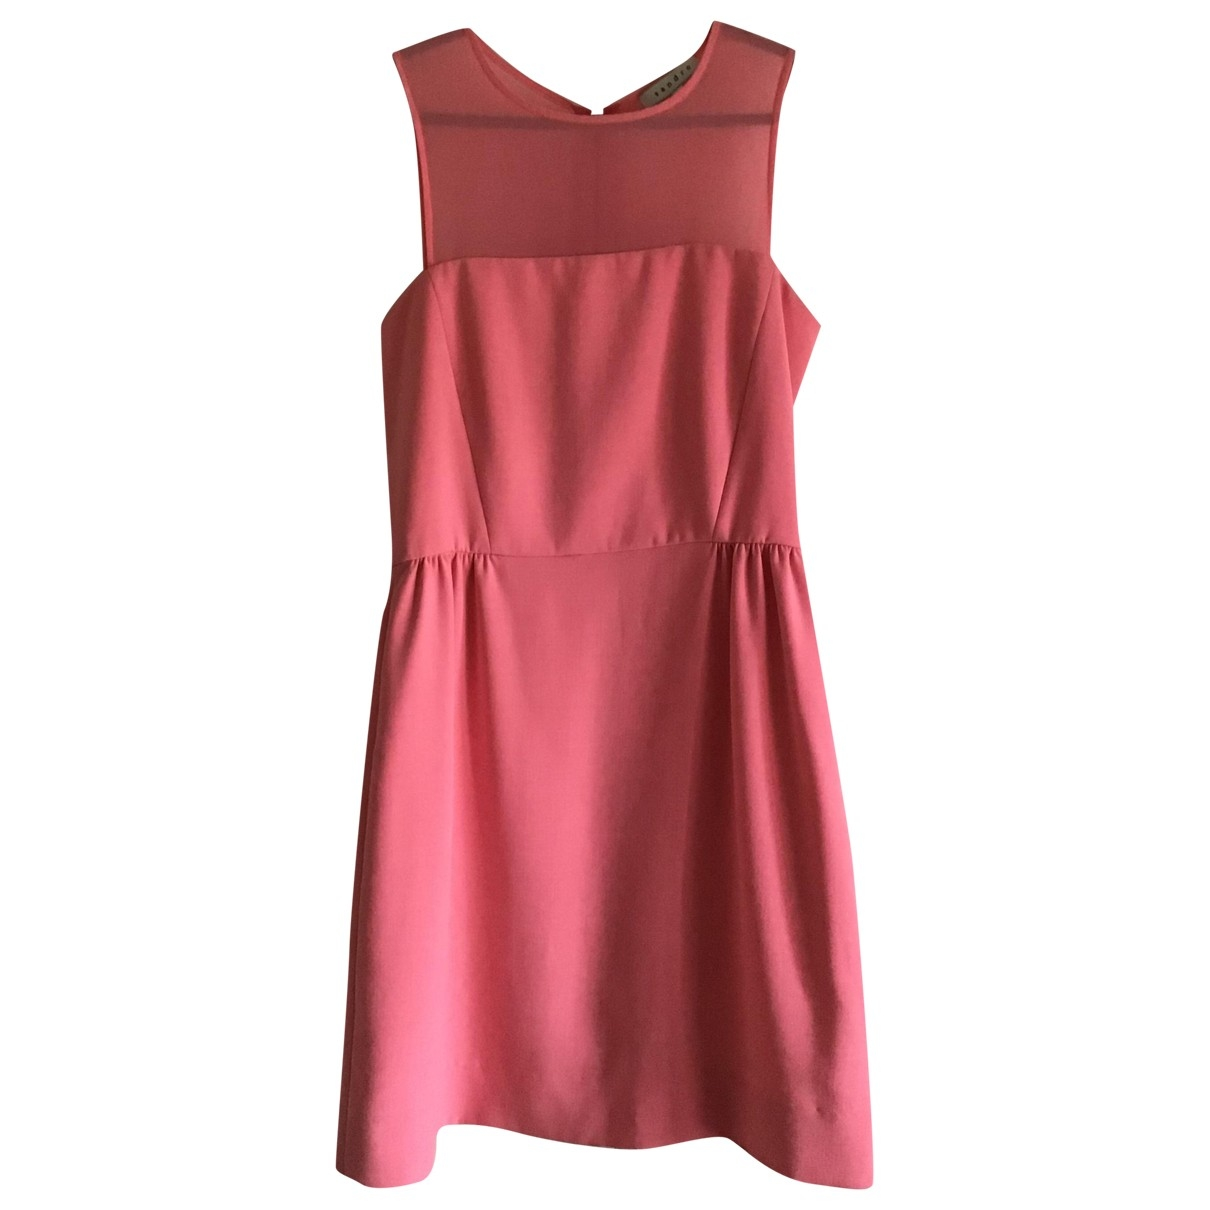 Sandro \N Pink dress for Women 38 FR